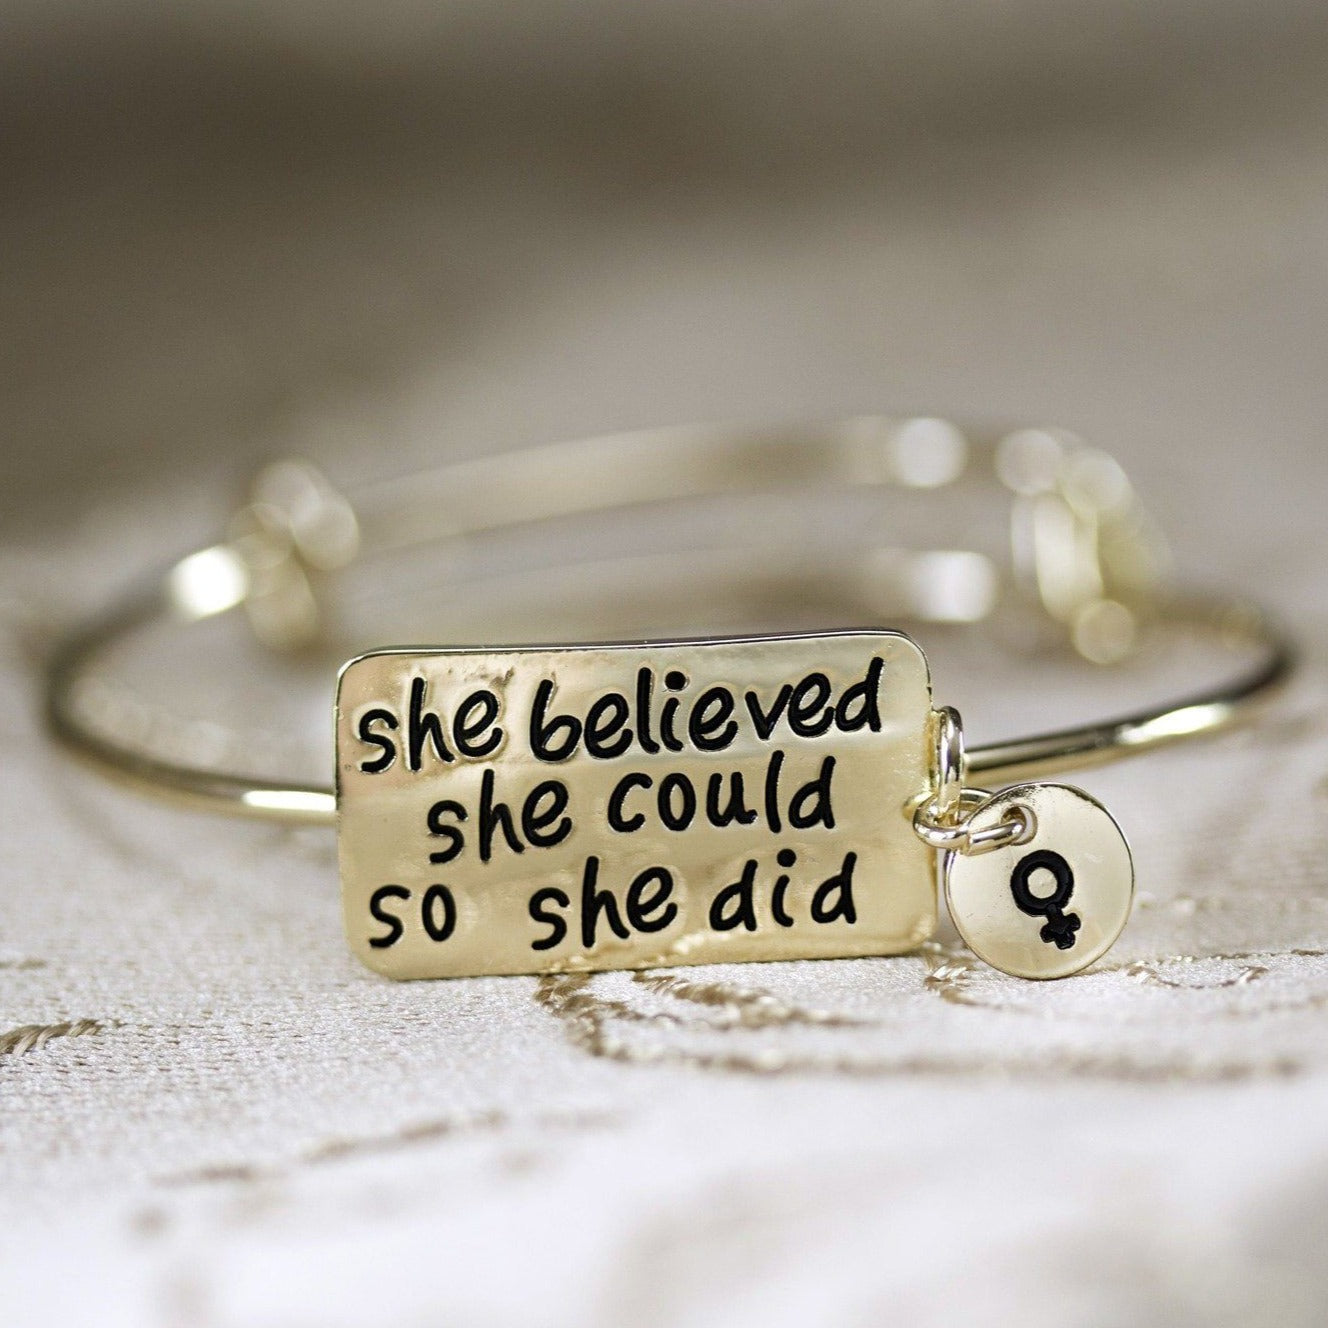 She Believed She Could So She Did Bracelet - Fem Things